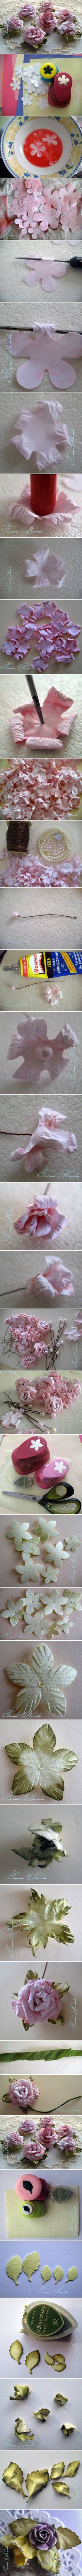 "<input+type=""hidden""+value=""""+data-frizzlyPostContainer=""""+data-frizzlyPostUrl=""http://www.usefuldiy.com/diy-curly-paper-rosettes/""+data-frizzlyPostTitle=""DIY+Curly+Paper+Rosettes""+data-frizzlyHoverContainer=""""><p>>>>+Craft+Tutorials+More+Free+Instructions+Free+Tutorials+More+Craft+Tutorials</p>"